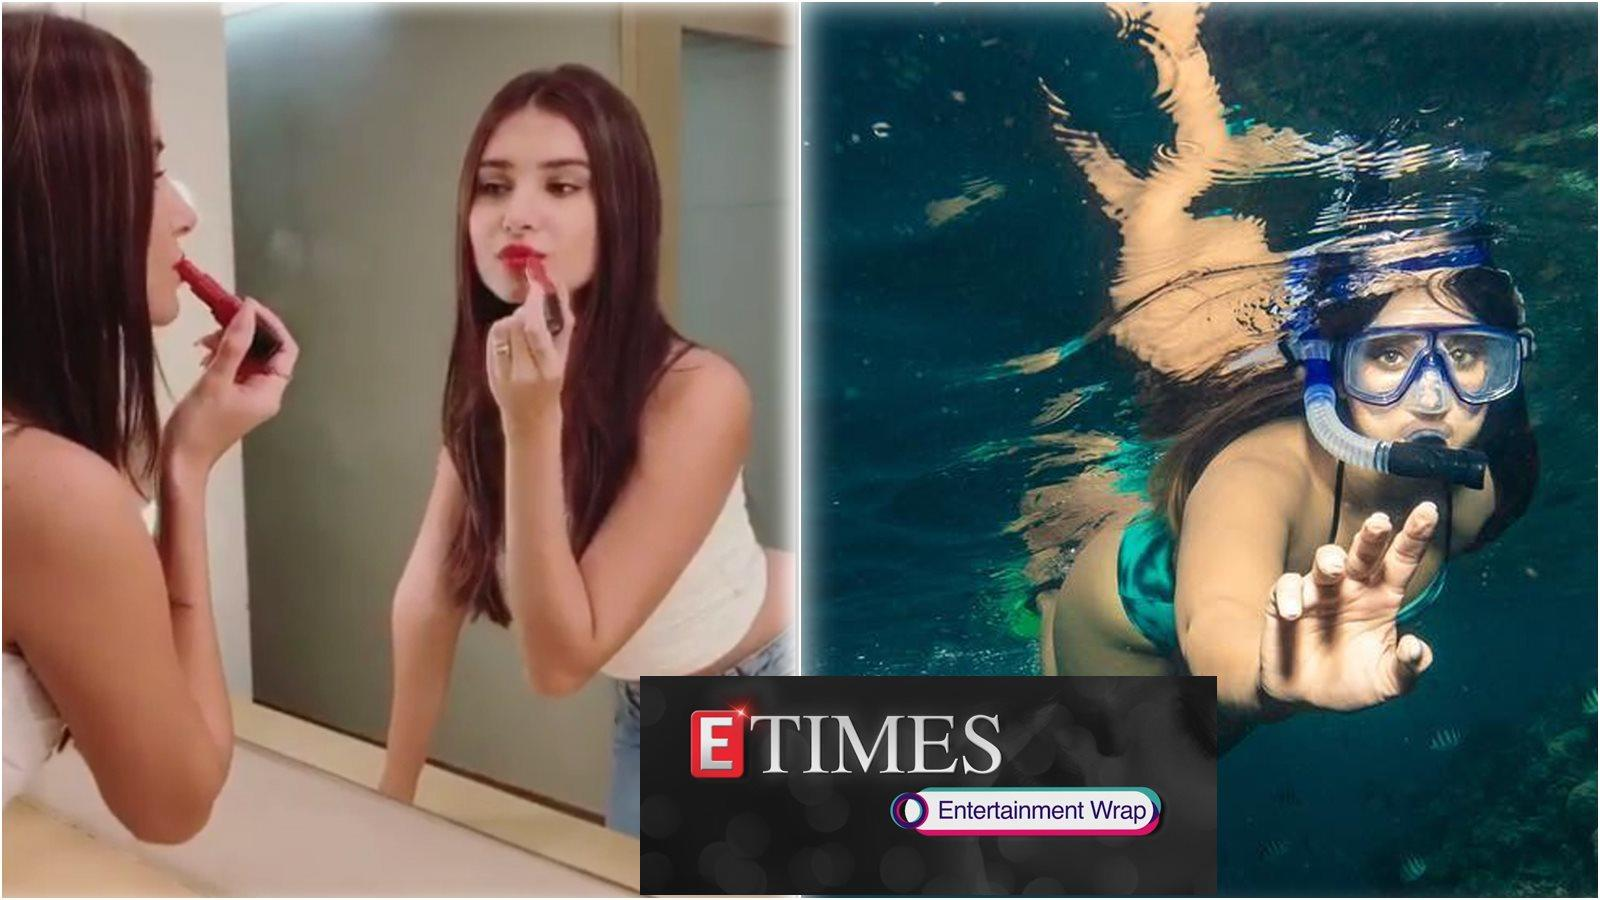 7e55262f5 Ileana D'Cruz shares throwback pics from Fiji vacation; Tara Sutaria gets  all decked up for 'new crush', and more...   Hindi Movie News - Bollywood -  Times ...